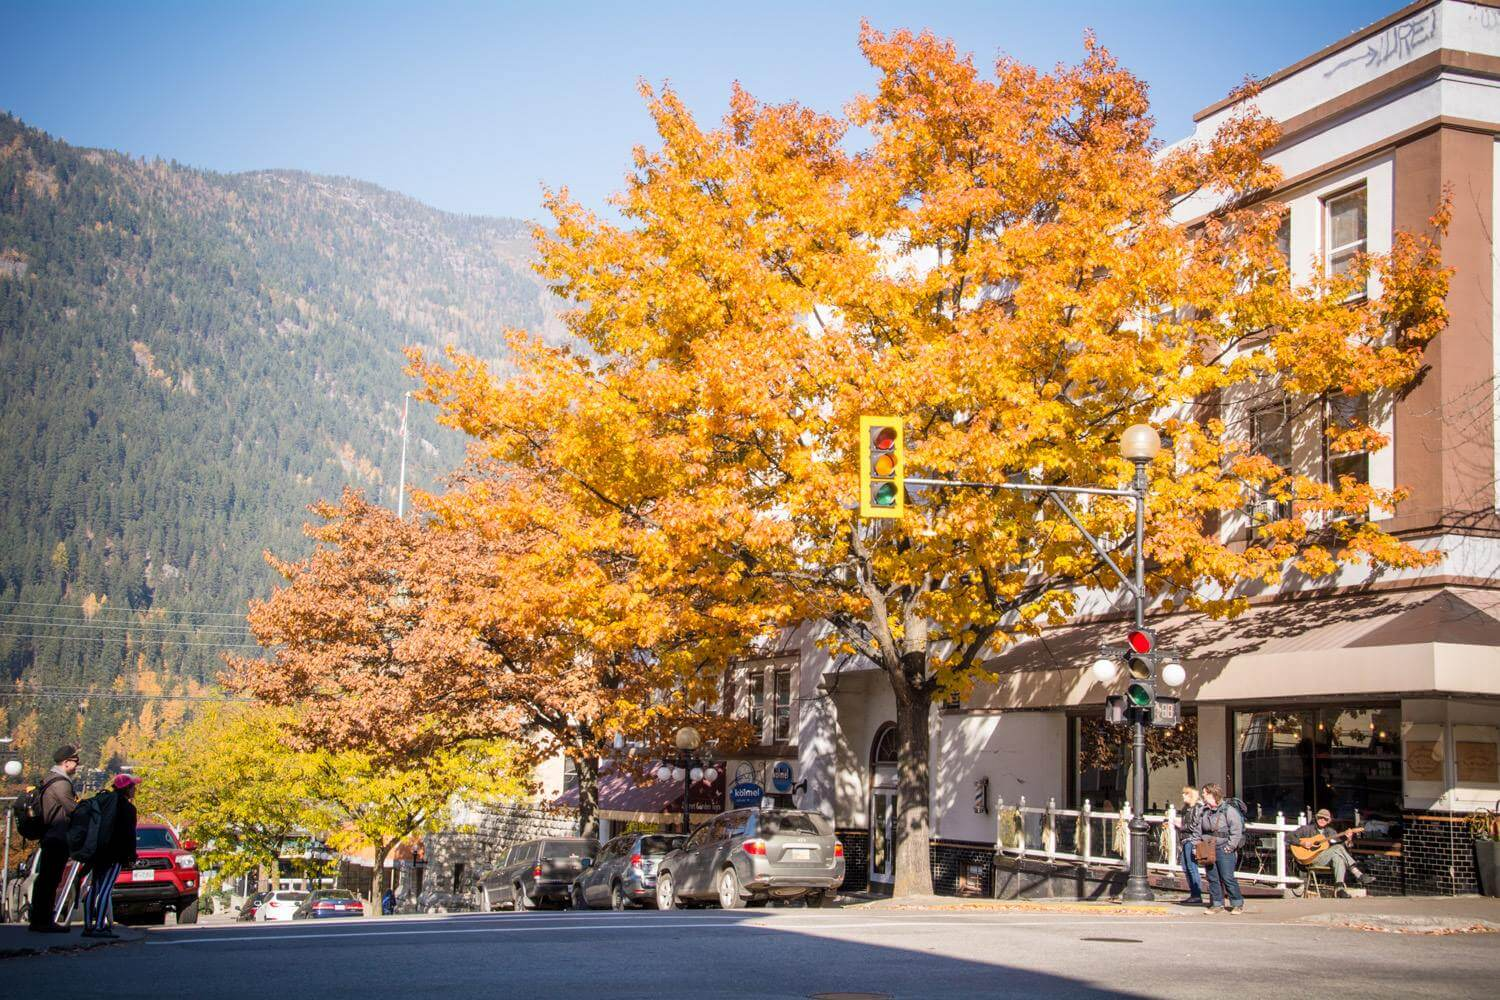 Nelson British Columbia downtown best Fall Foliage in the western US & Canada